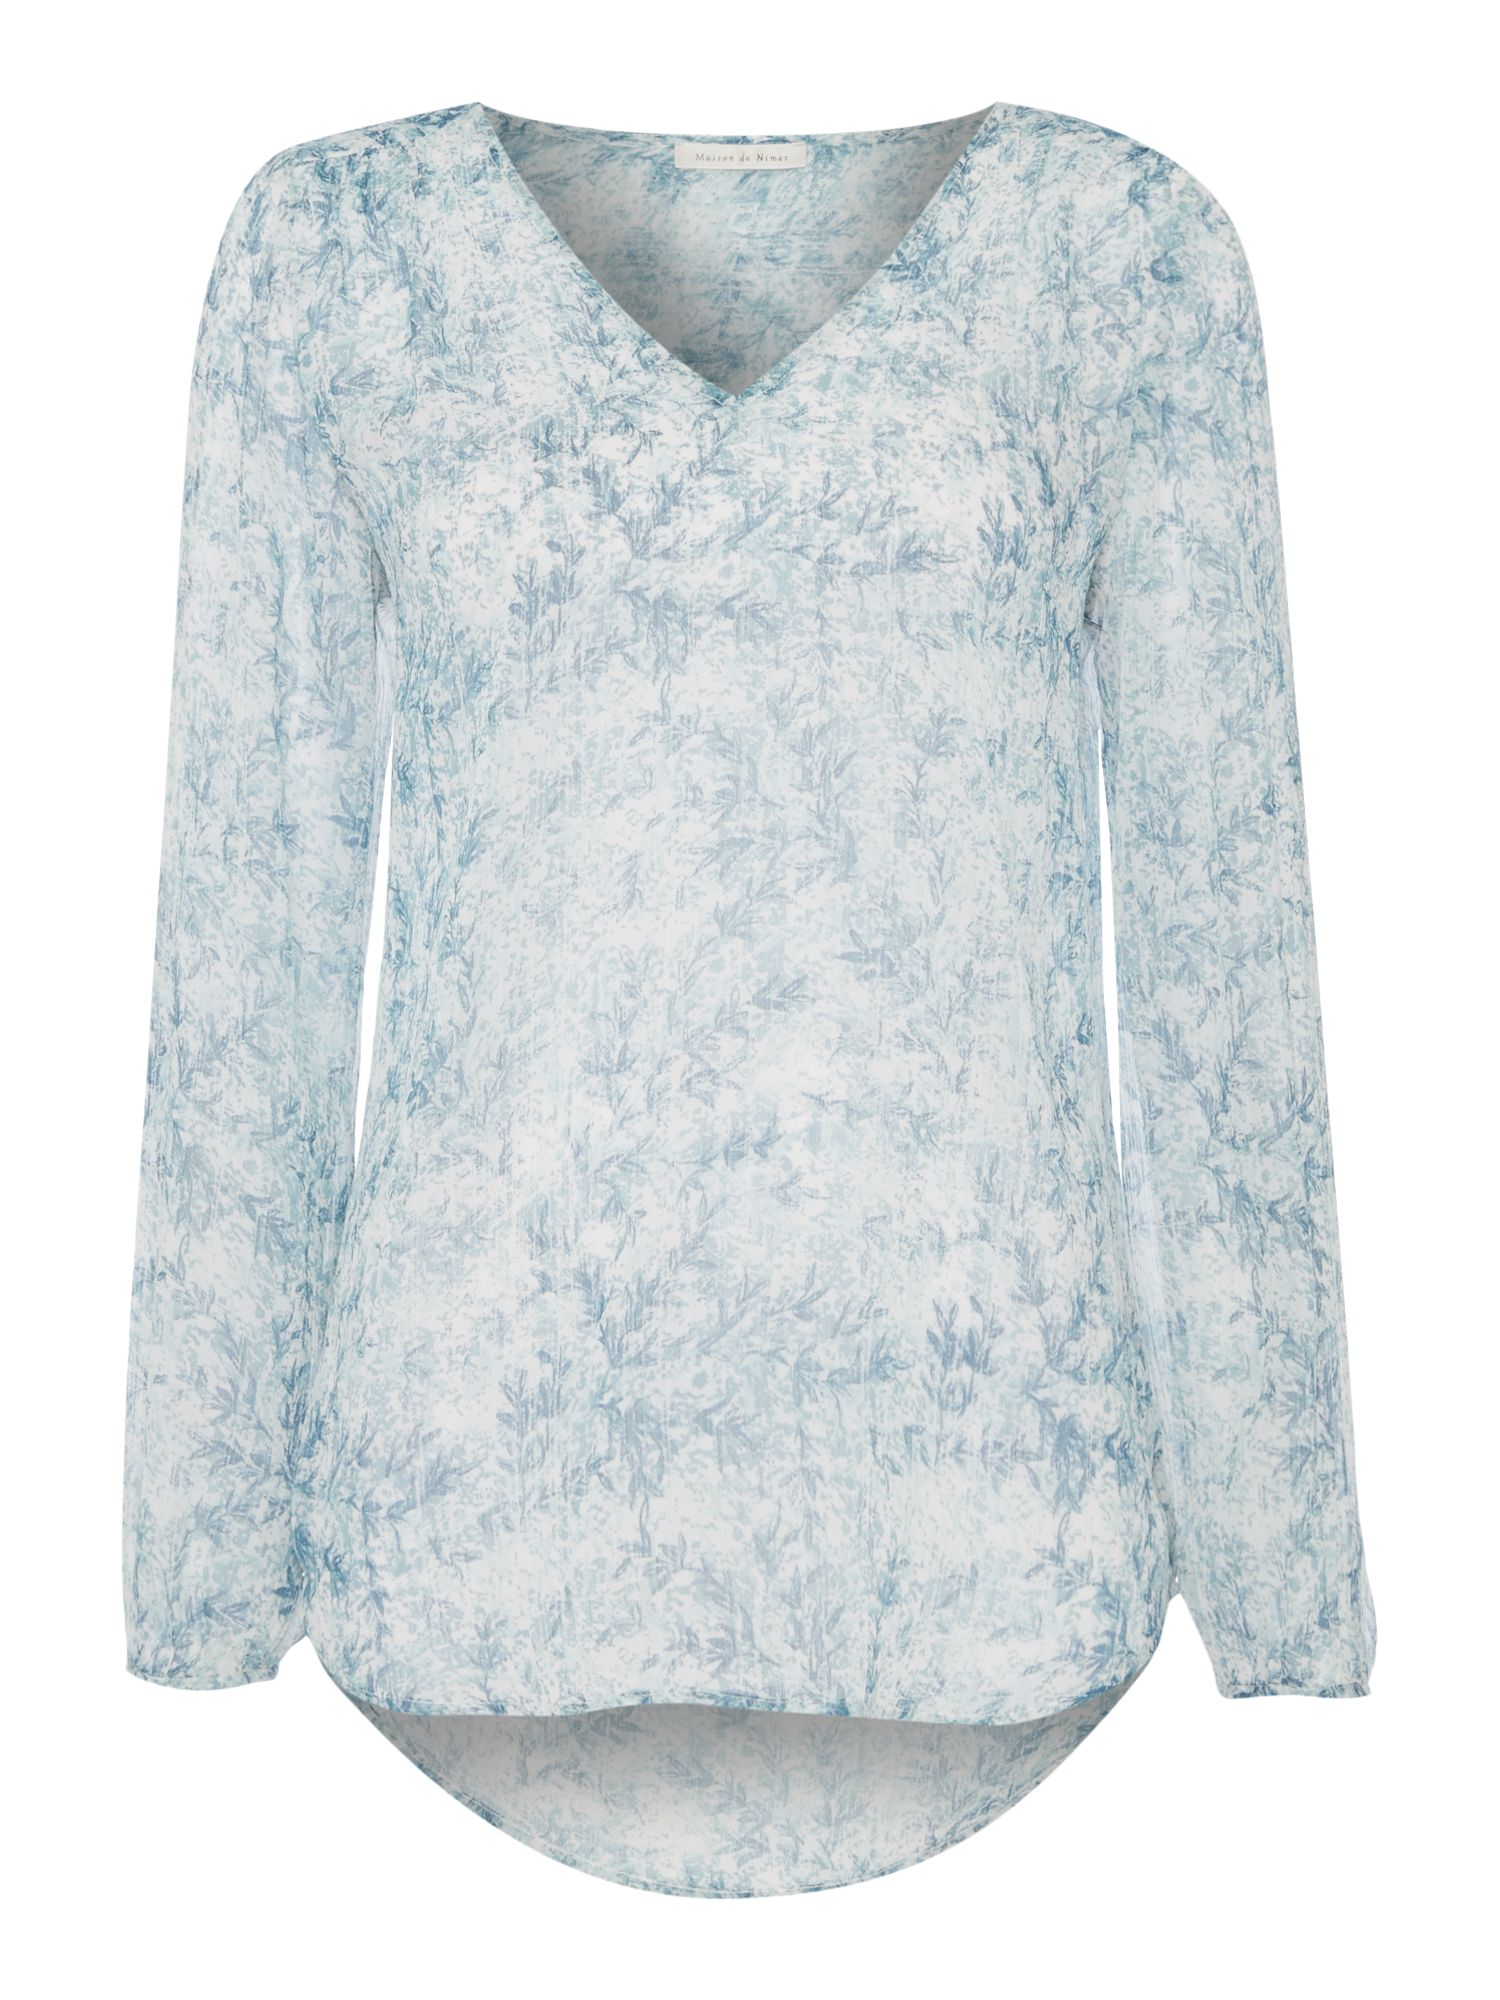 Maison De Nimes Sea Mist Blouse, Multi-Coloured